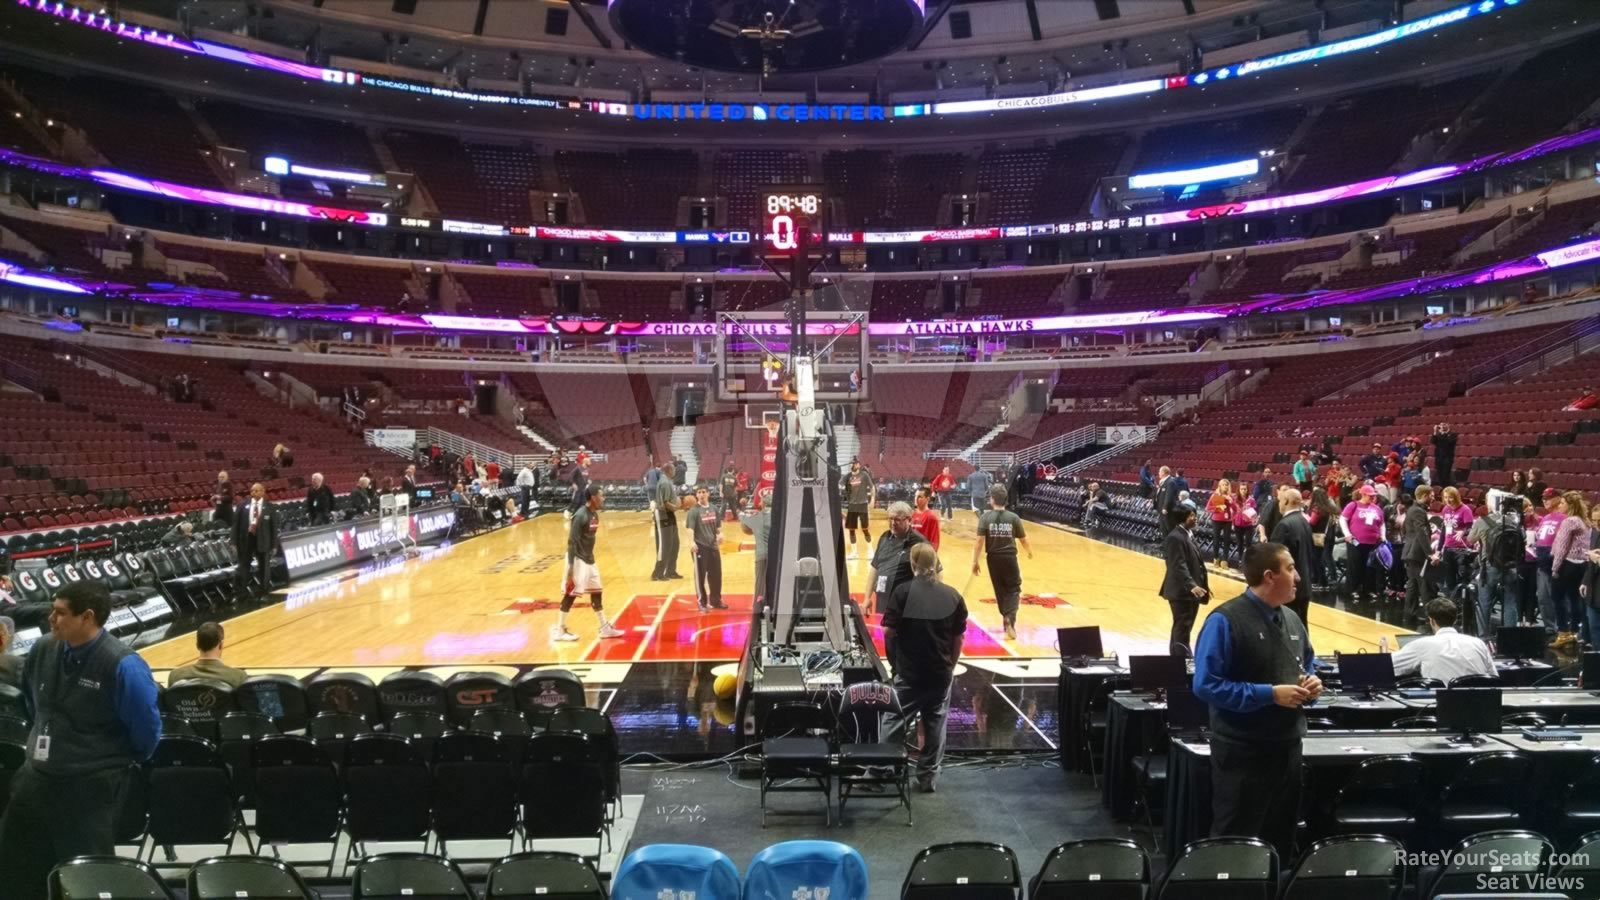 Chicago Bulls - United Center Section 117 - RateYourSeats.com